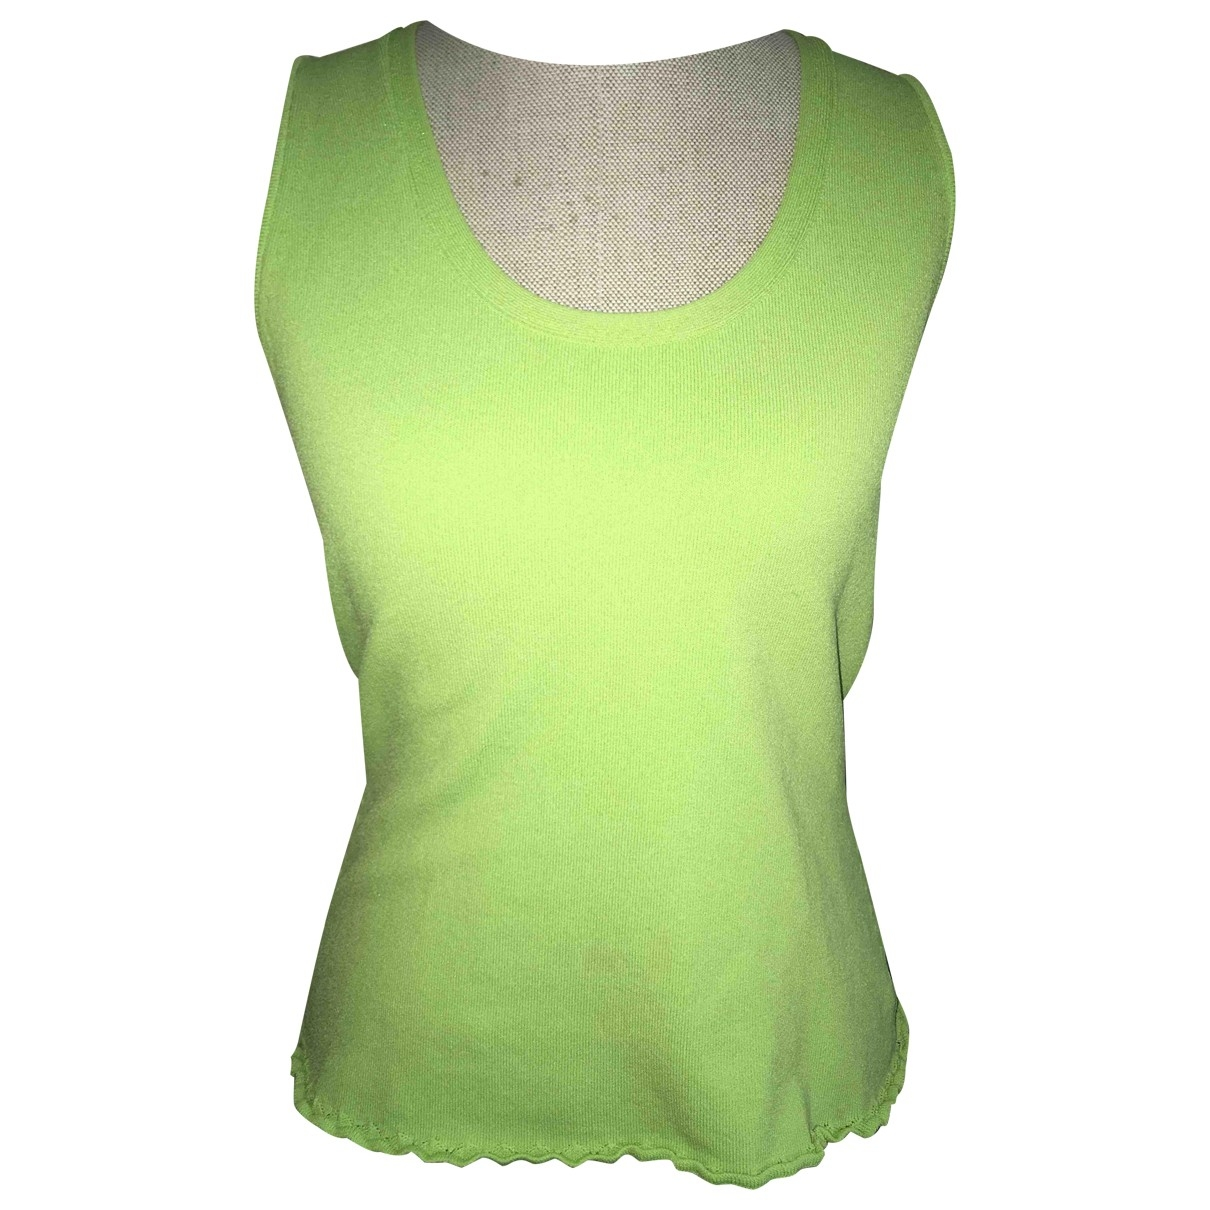 Moschino Cheap And Chic \N Green  top for Women M International